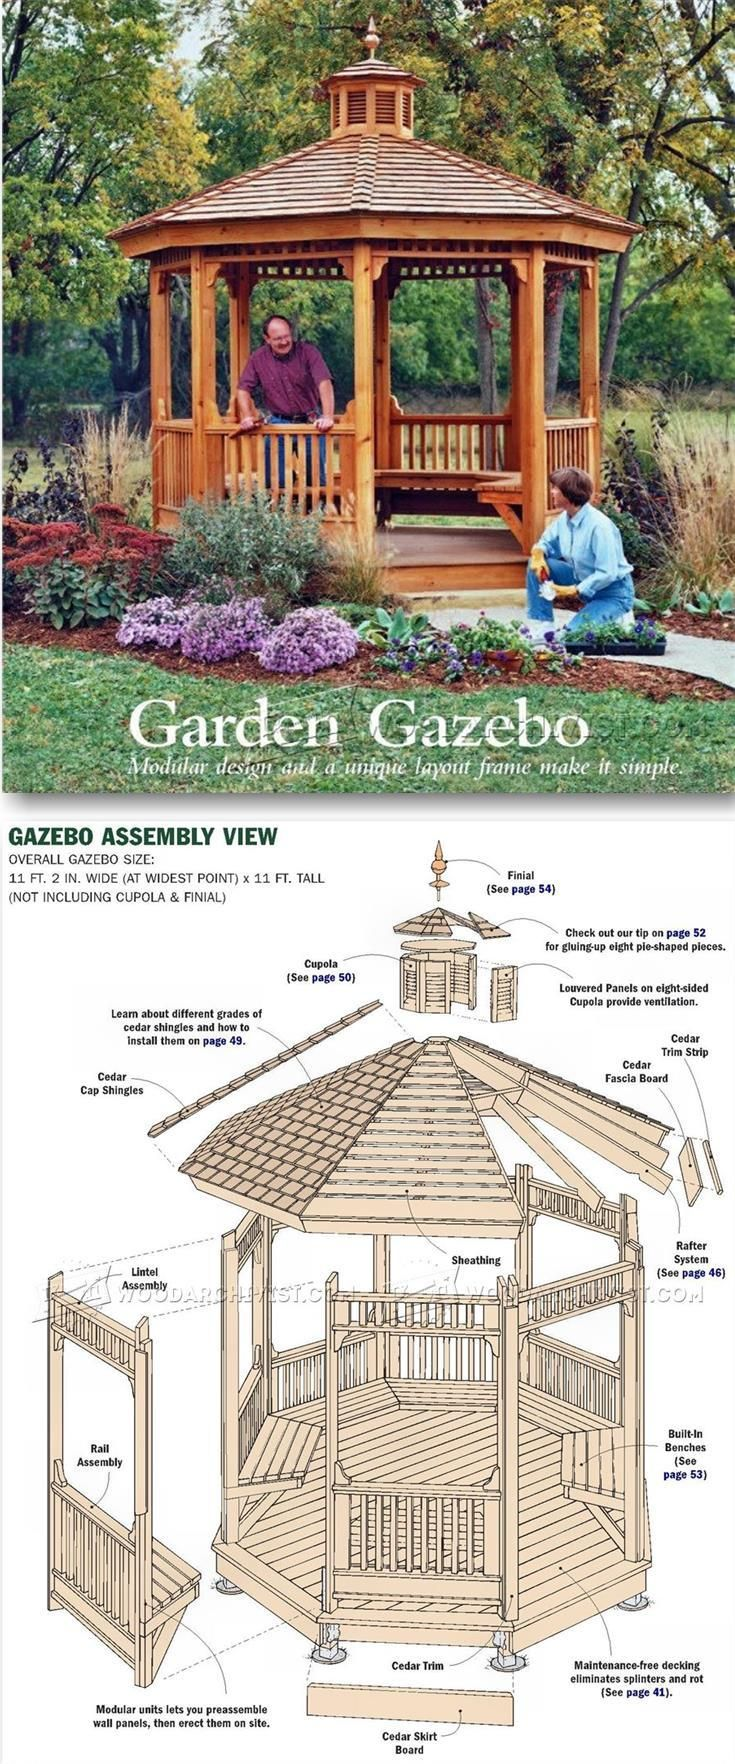 Garden Gazebo Plans Outdoor Plans And Projects